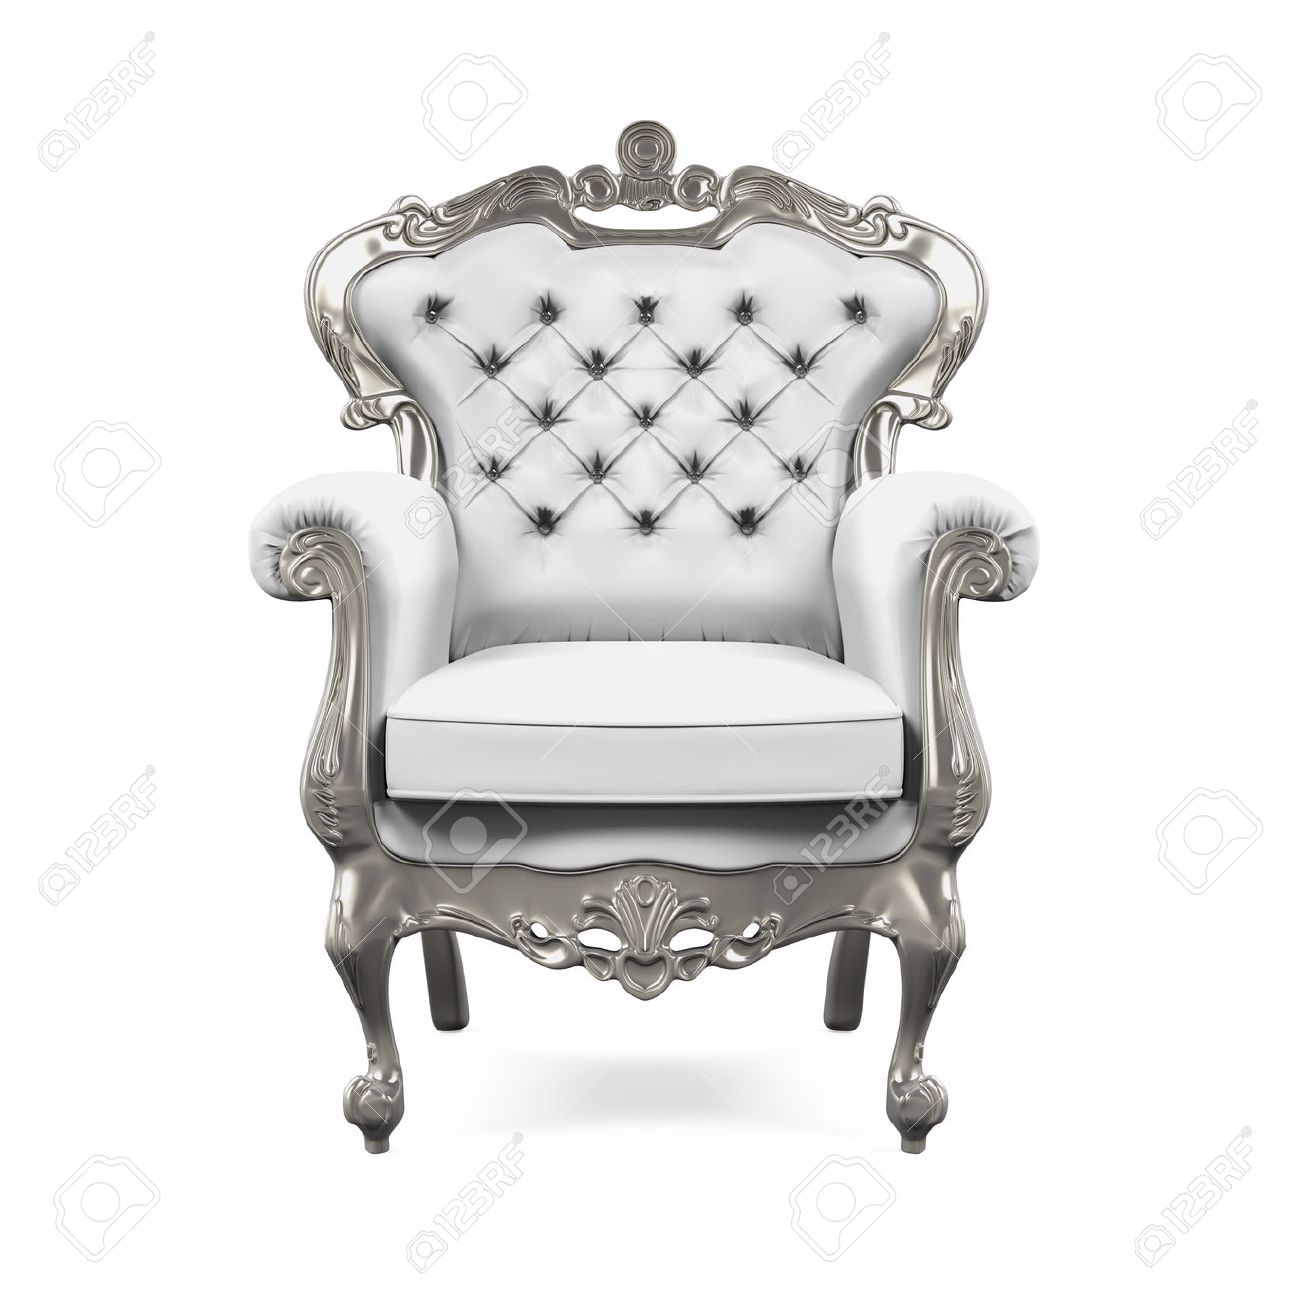 King Throne Chair Stock Photo   62345920